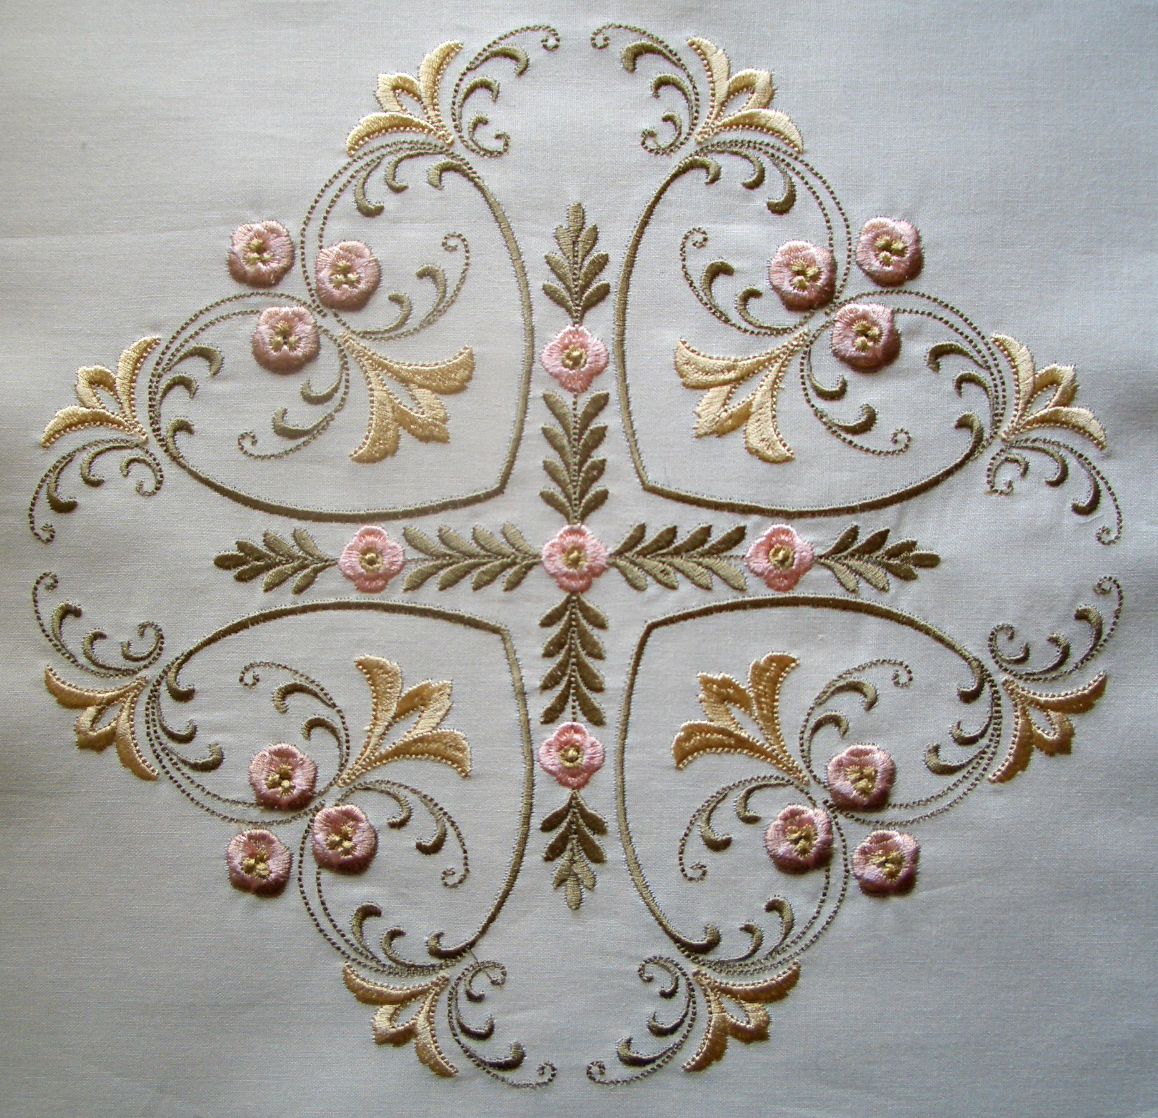 Cinnamon Serenade | Creative Ideas for Editing Embroidery Designs : stamped quilt blocks - Adamdwight.com